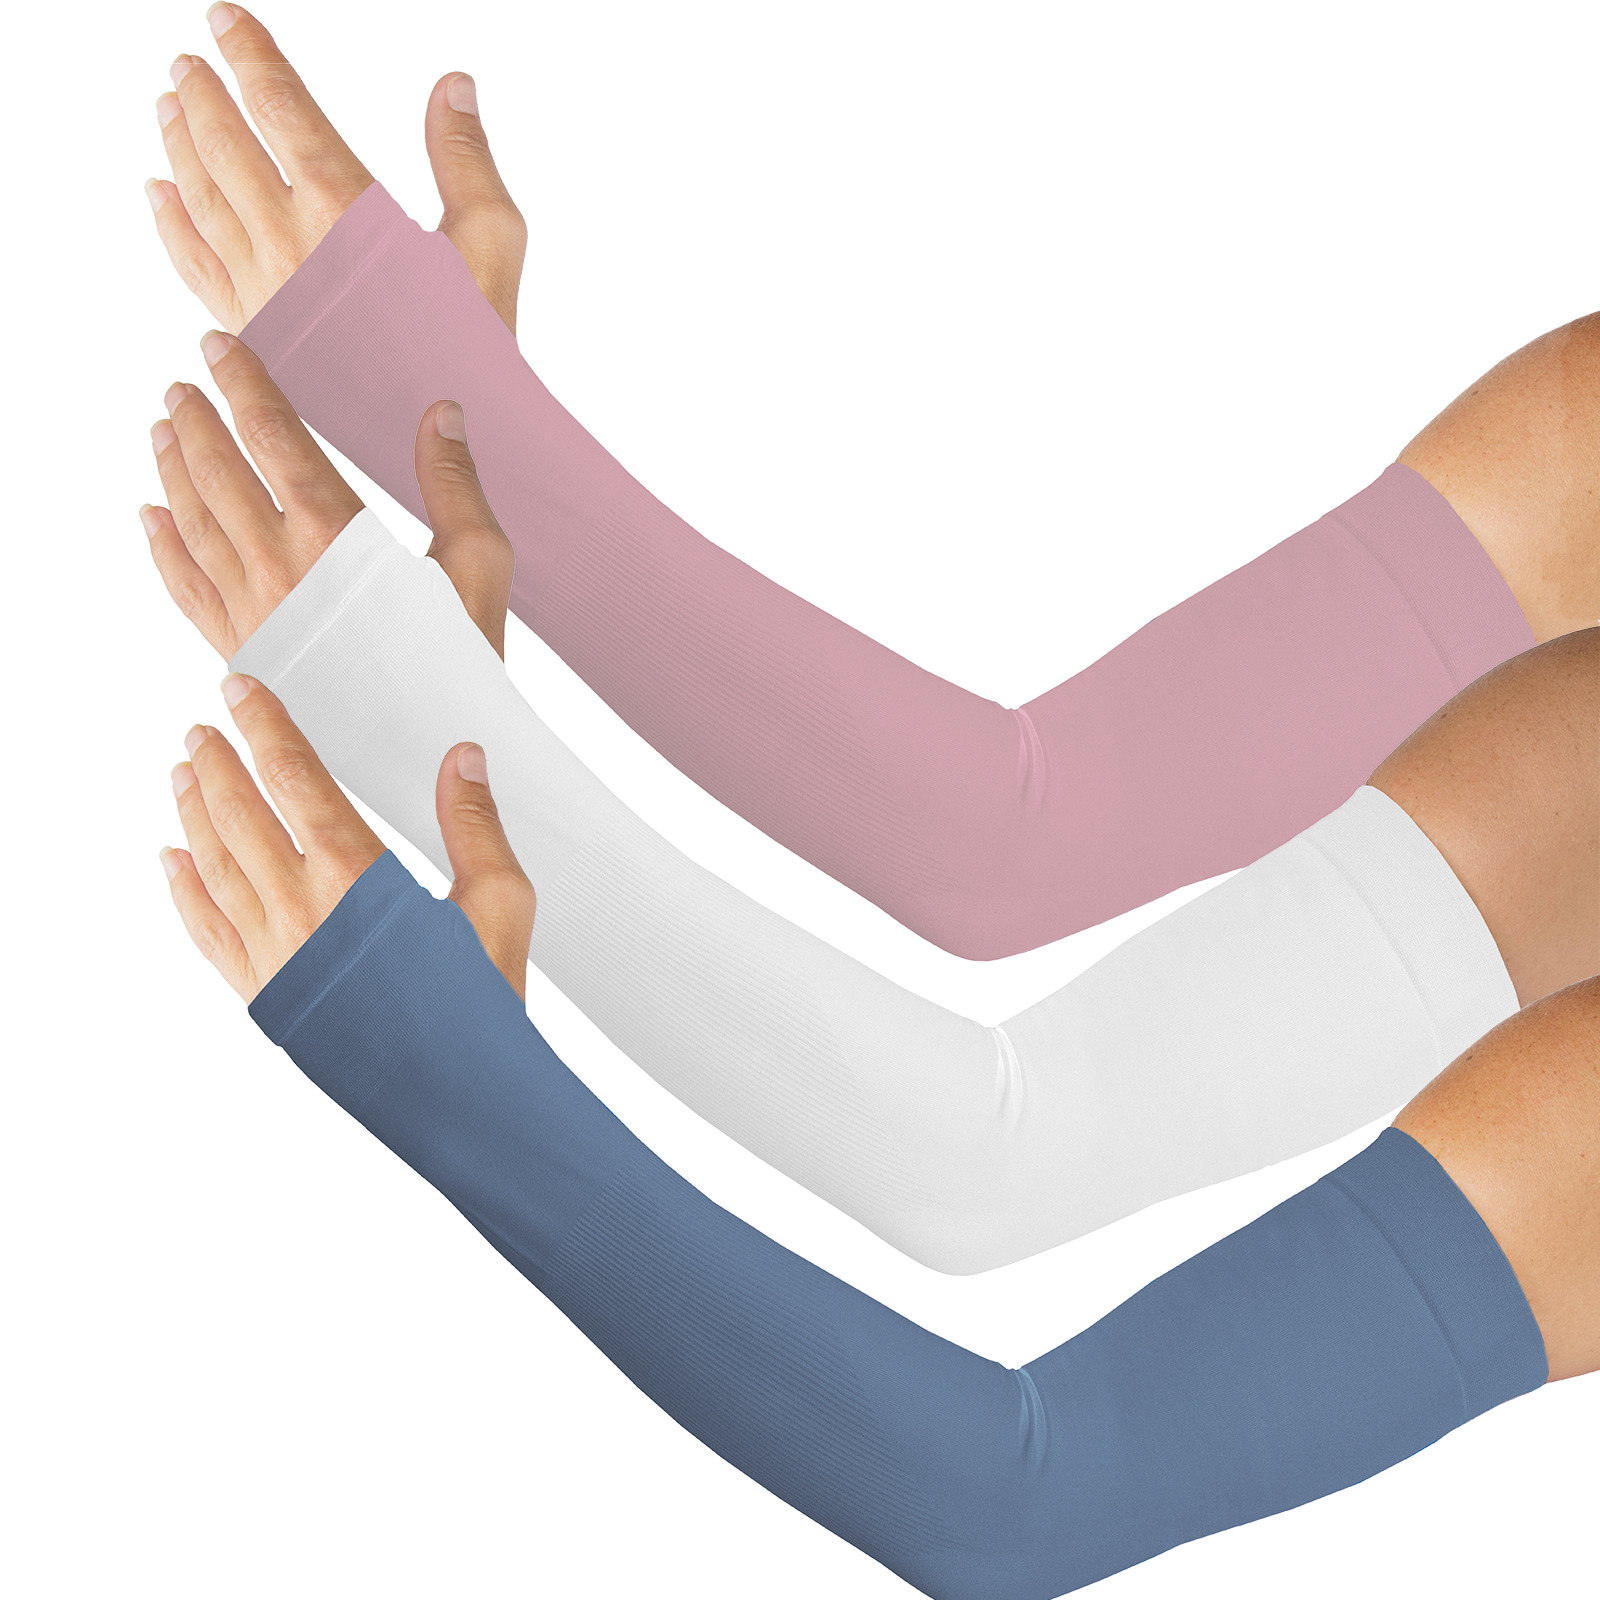 Sun Protection Arm & Hand Sleeve for skin from Kinship Comfort Brands